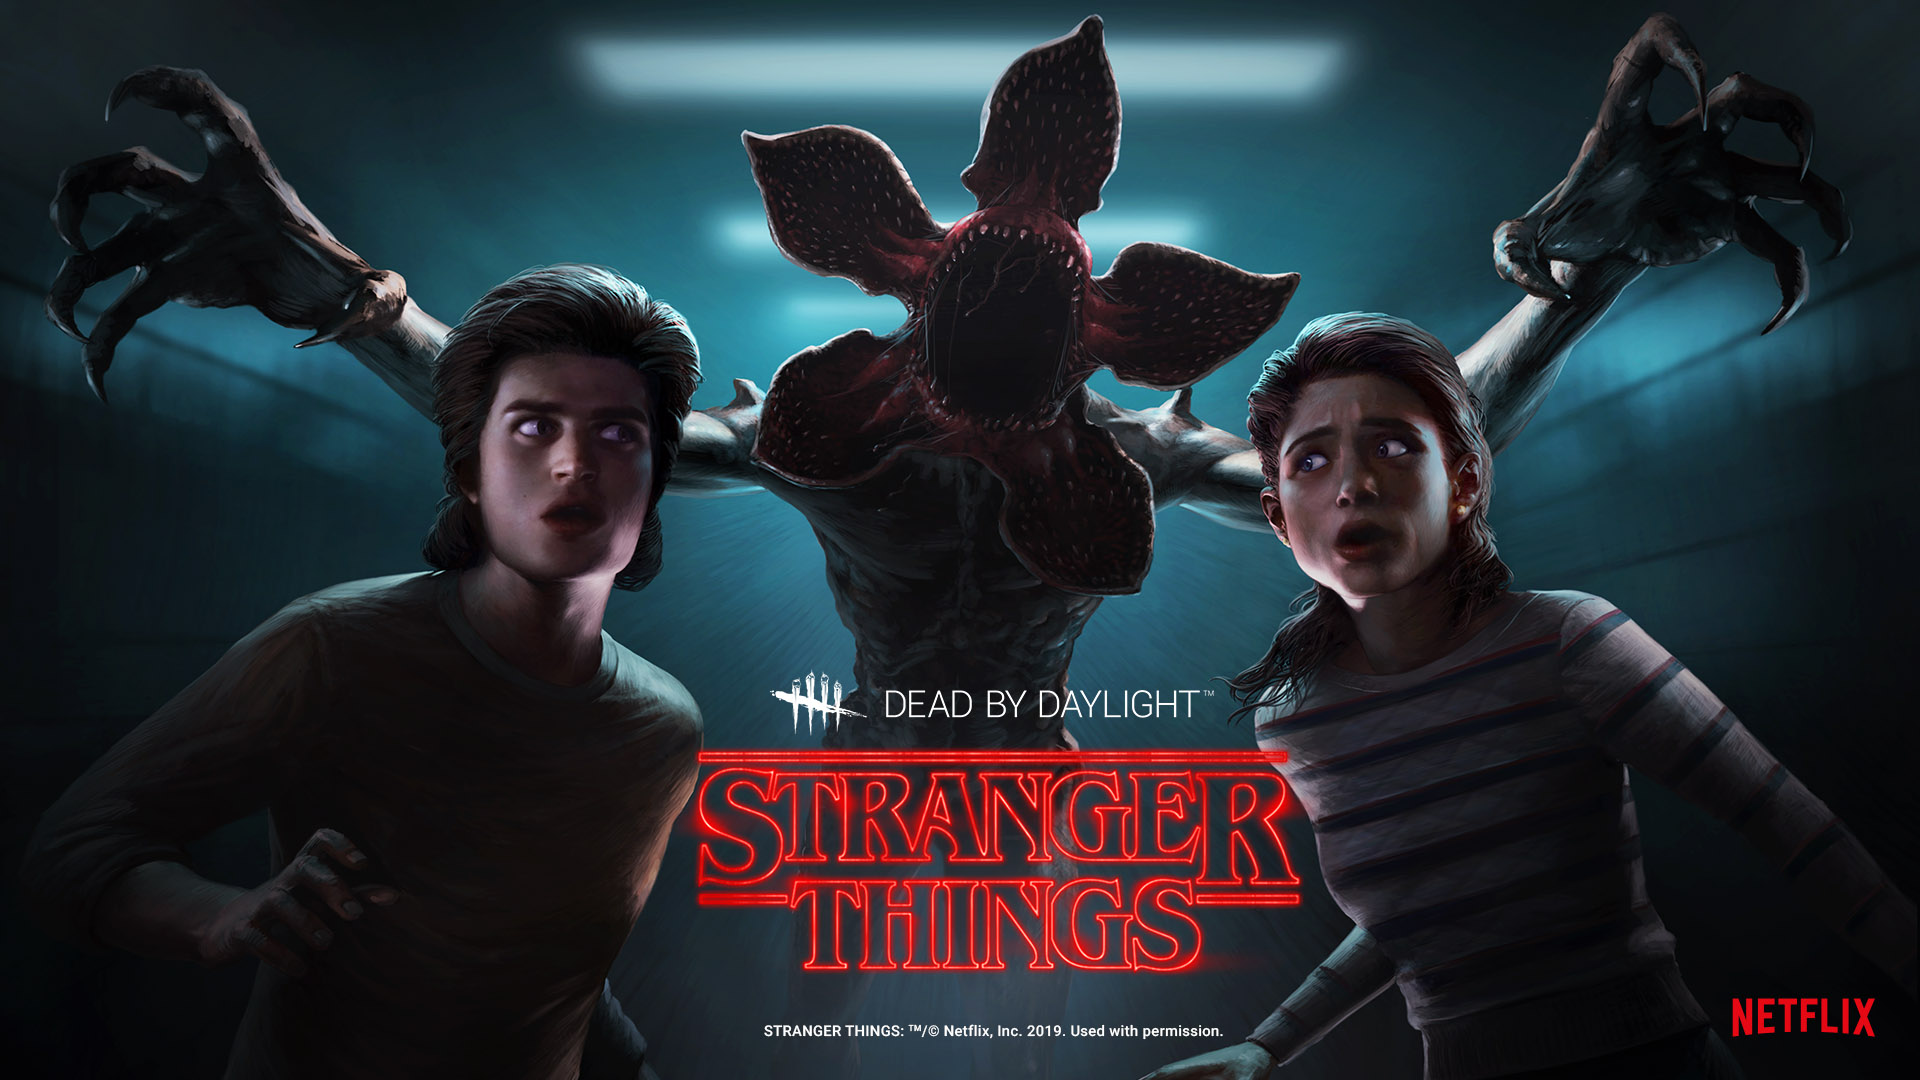 The Dead by Daylight/Stranger Things chapter key art. Nancy Wheeler and Steve Harrington look afraid. Behind them is the Demogorgon, with its arms extended and mouth wide open.